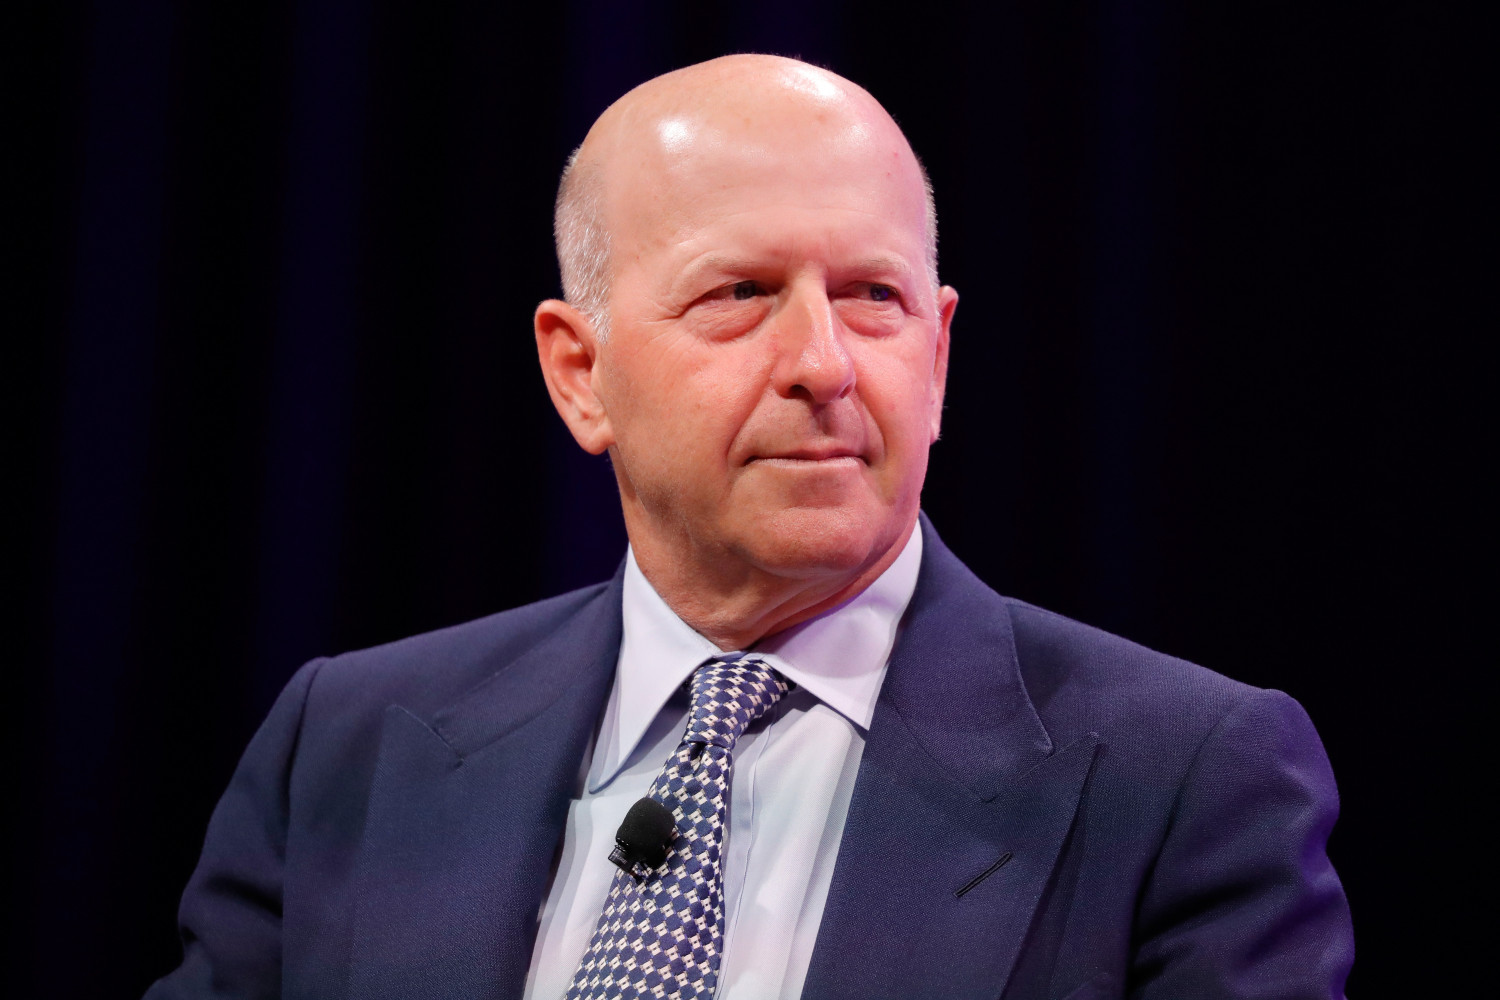 Goldman Sachs CEO believes Bitcoin regulations are set for a 'big evolution'